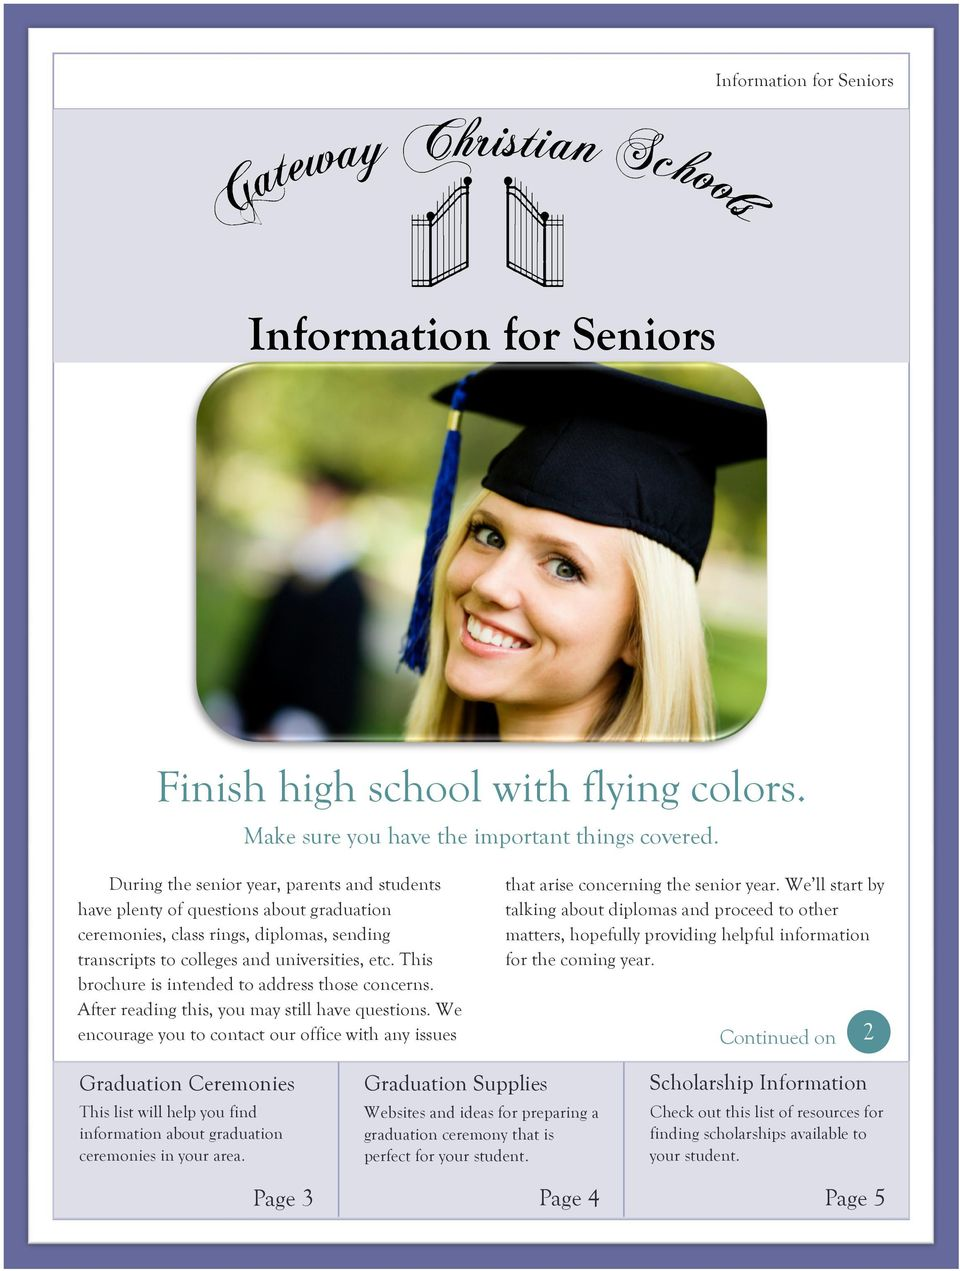 This brochure is intended to address those concerns. After reading this, you may still have questions. We encourage you to contact our office with any issues that arise concerning the senior year.